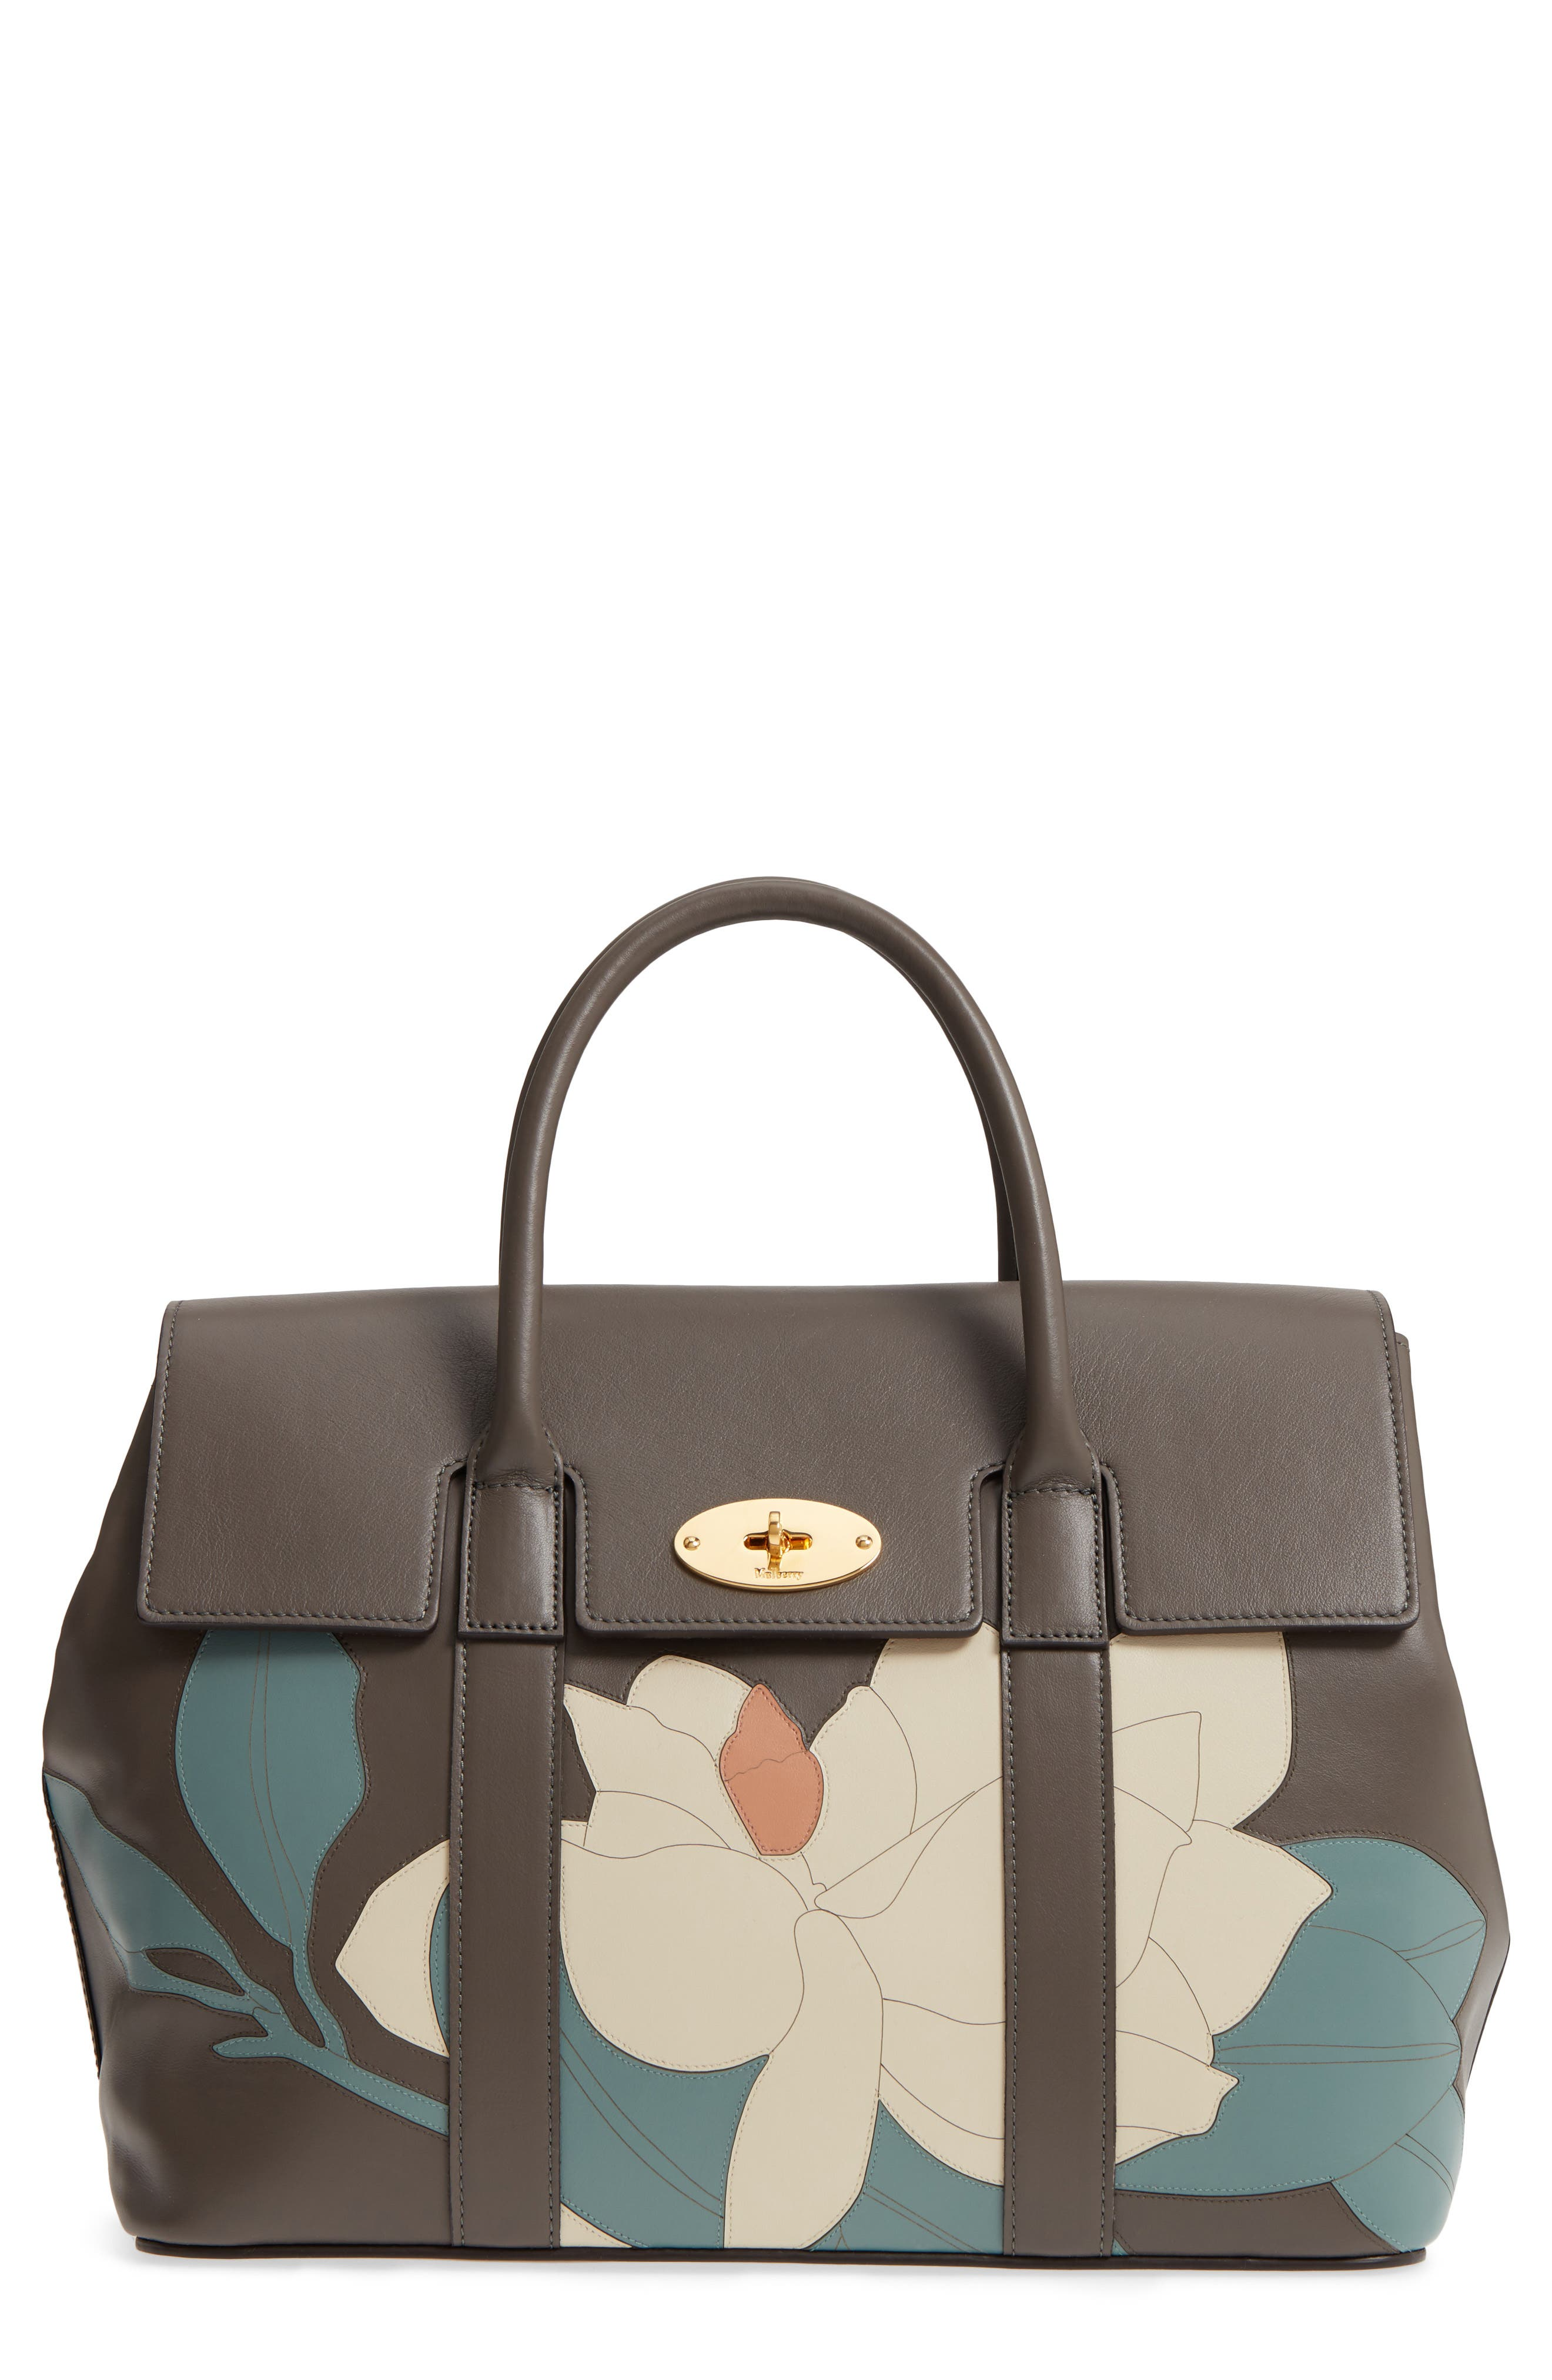 Mulberry Bayswater Magnolia Leather Satchel